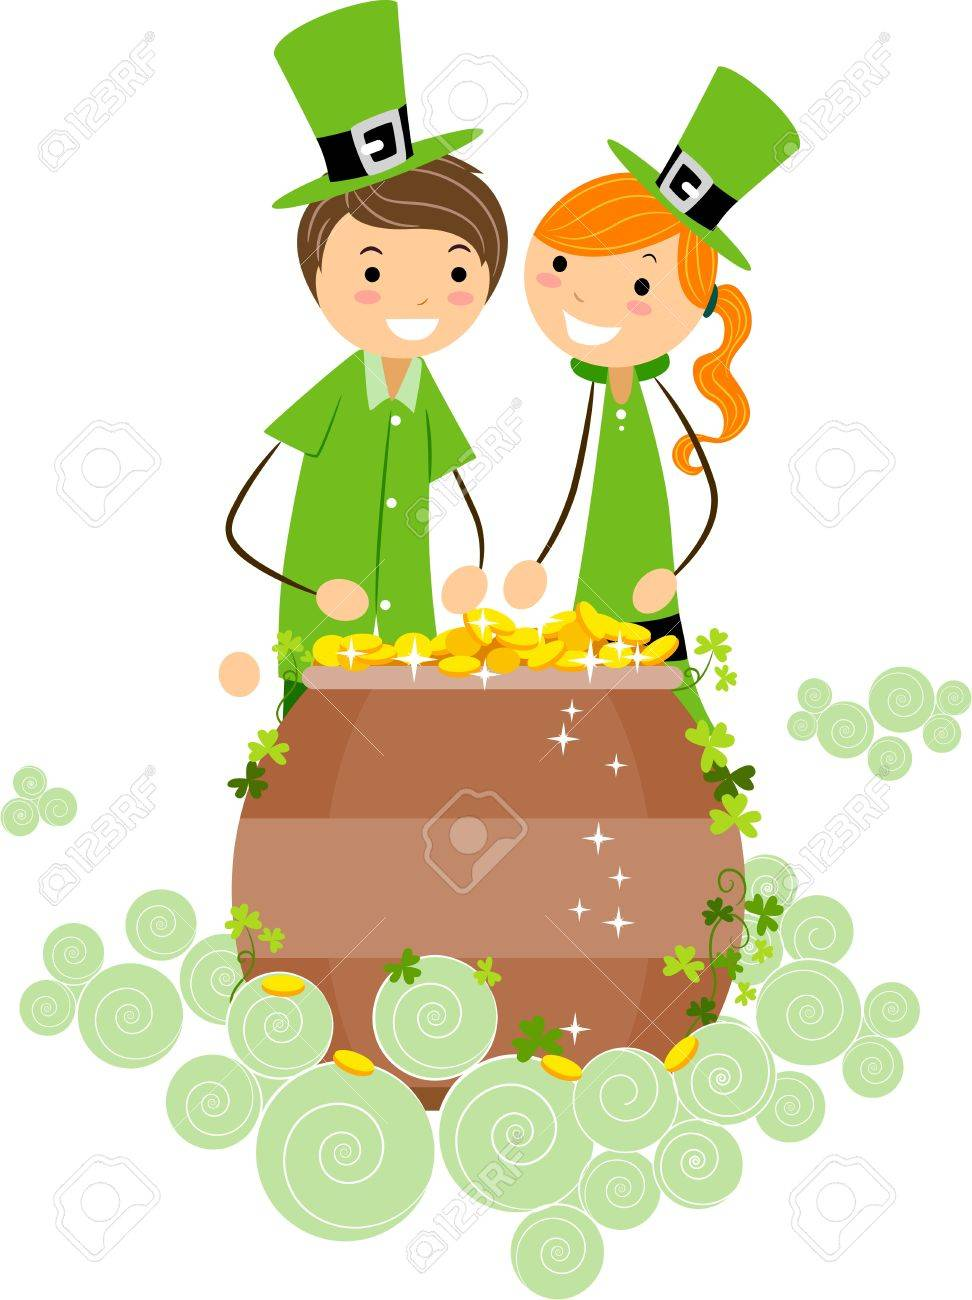 Illustration of a Boy and Girl Checking Out a Pot of Gold Stock Photo - 8993610